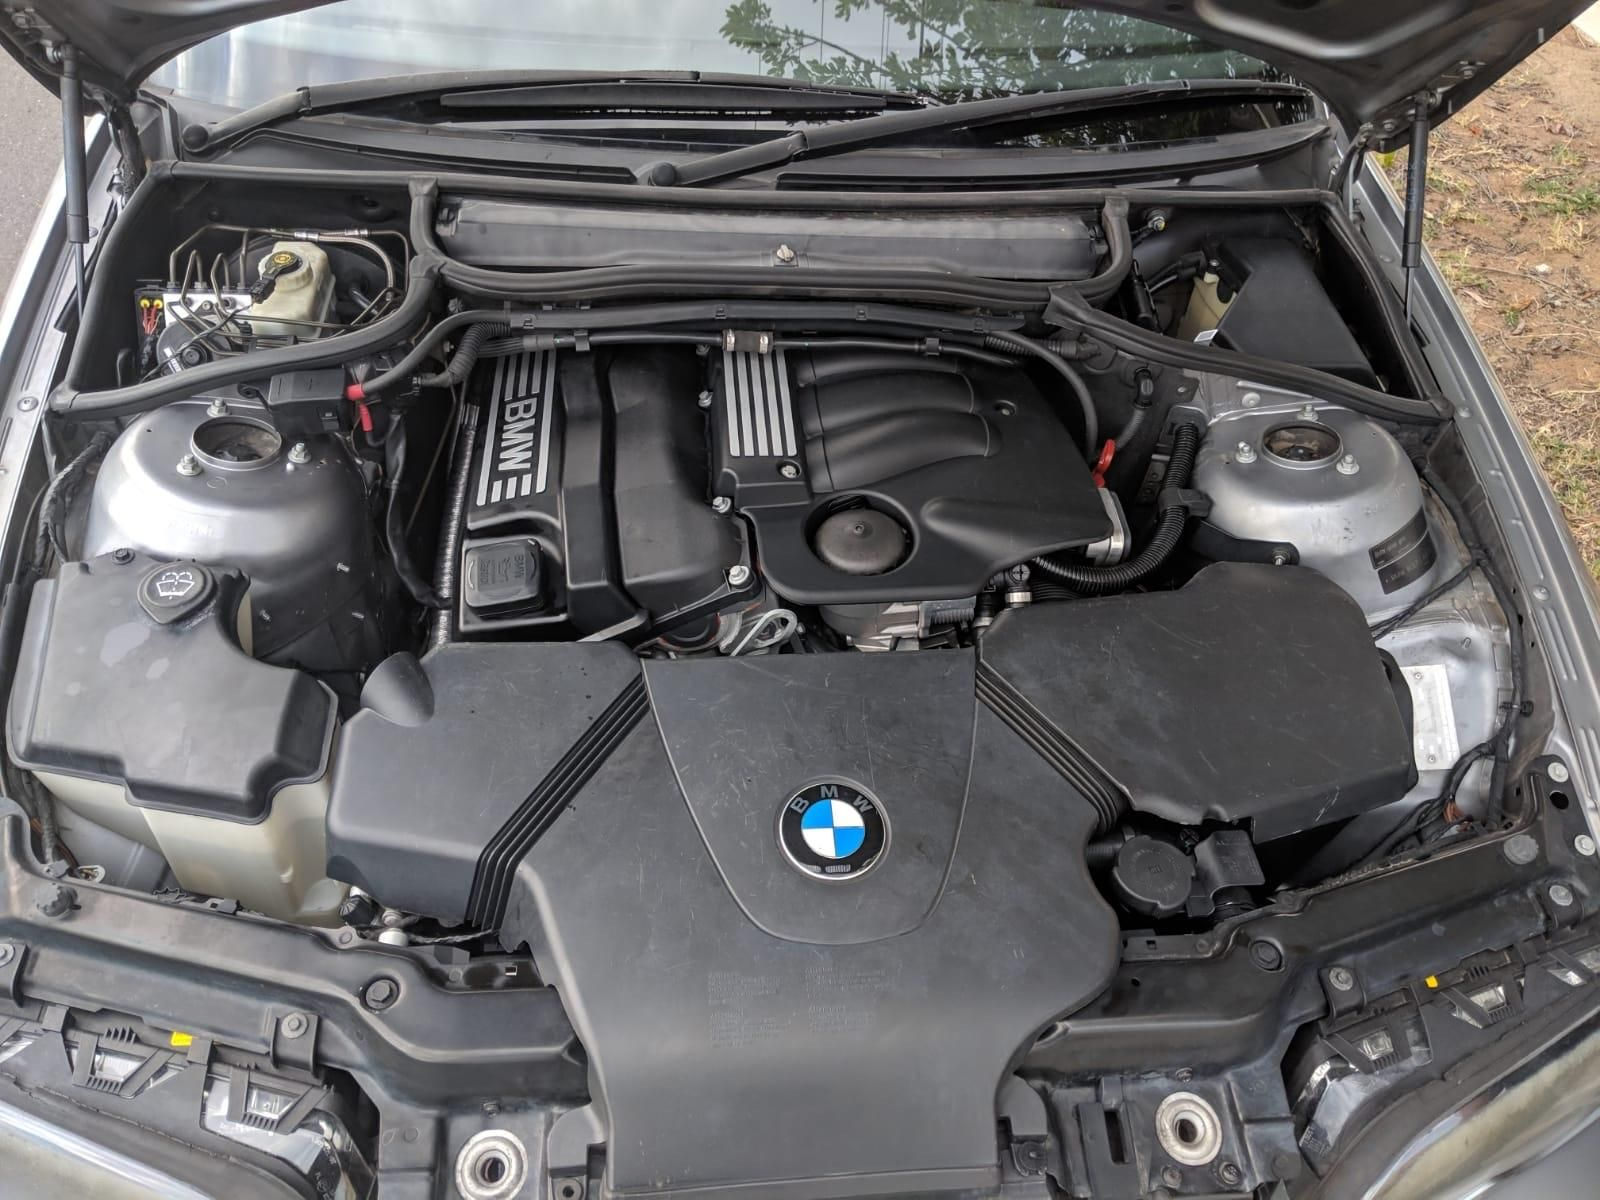 Should I Buy This 2003 Bmw 318i E46 With Images Bmw Bmw 318i